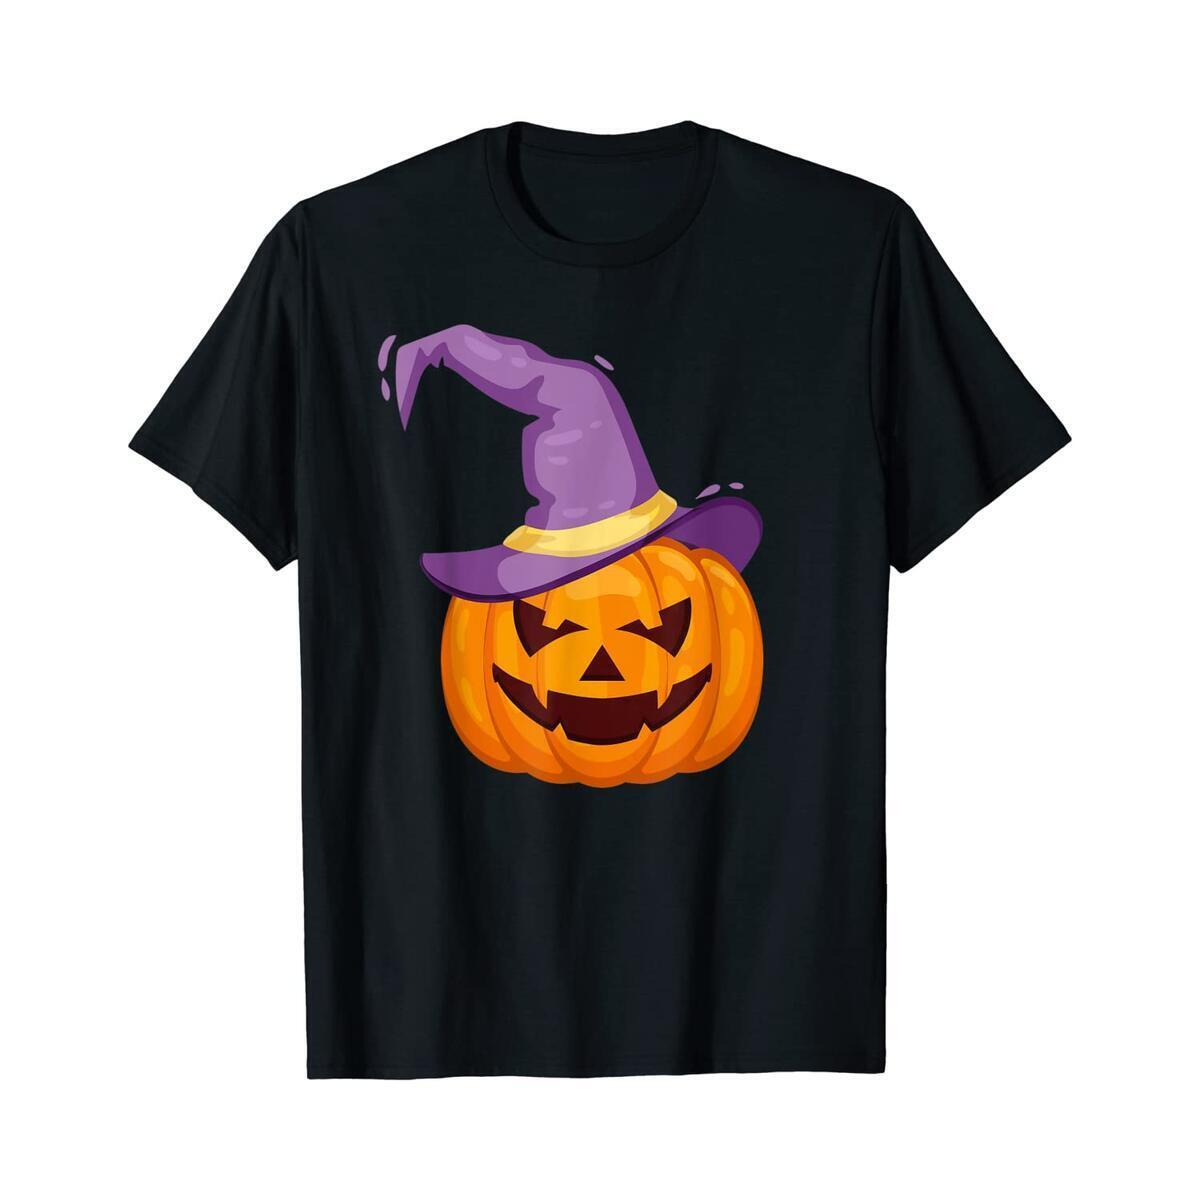 Halloween Funny Jackolantern Pumkin Witchy T-Shirt (Any Size and Color)